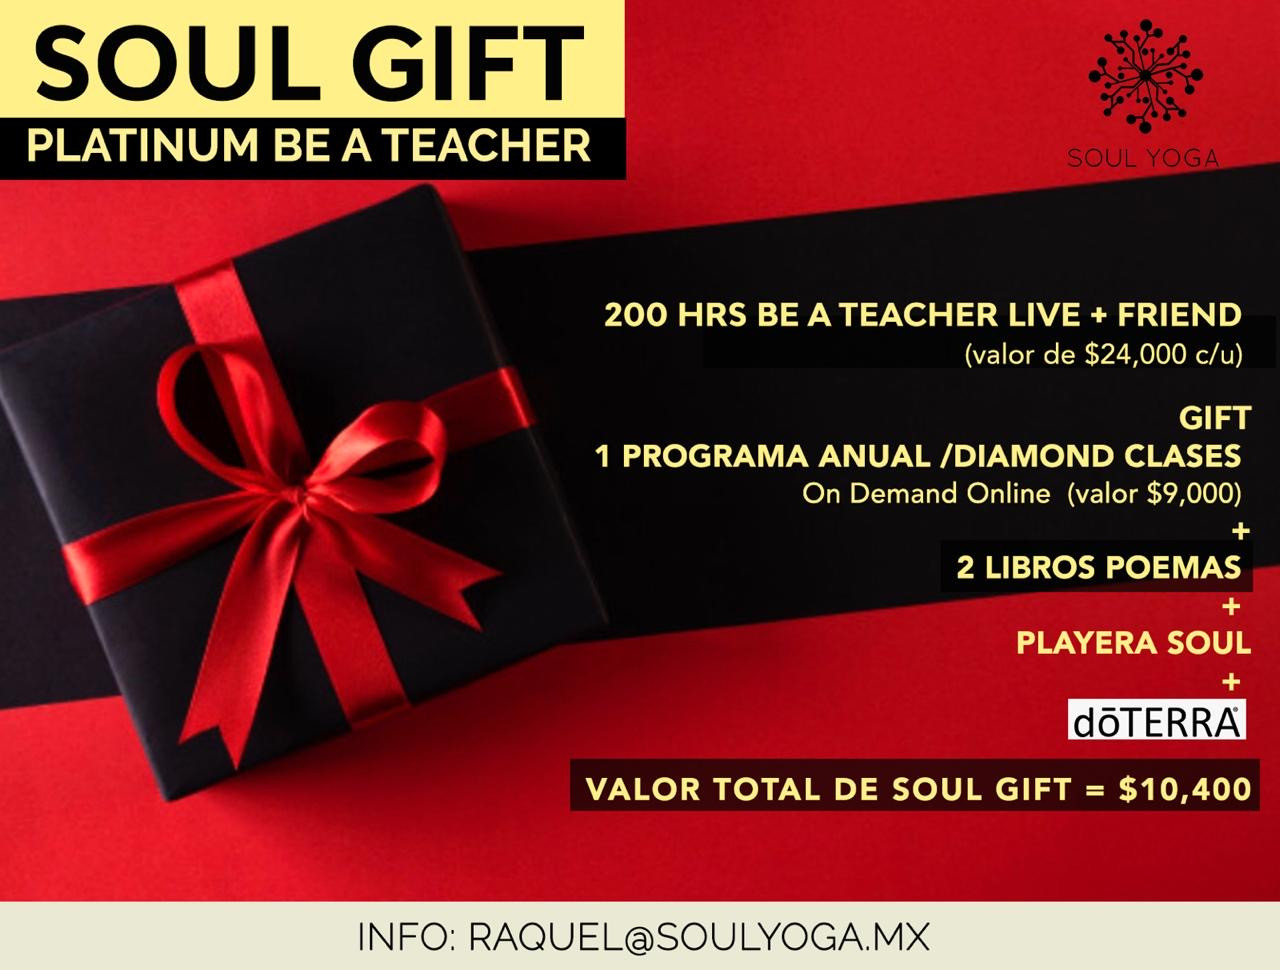 SOUL GIFT PLATINUM BE A TEACHER